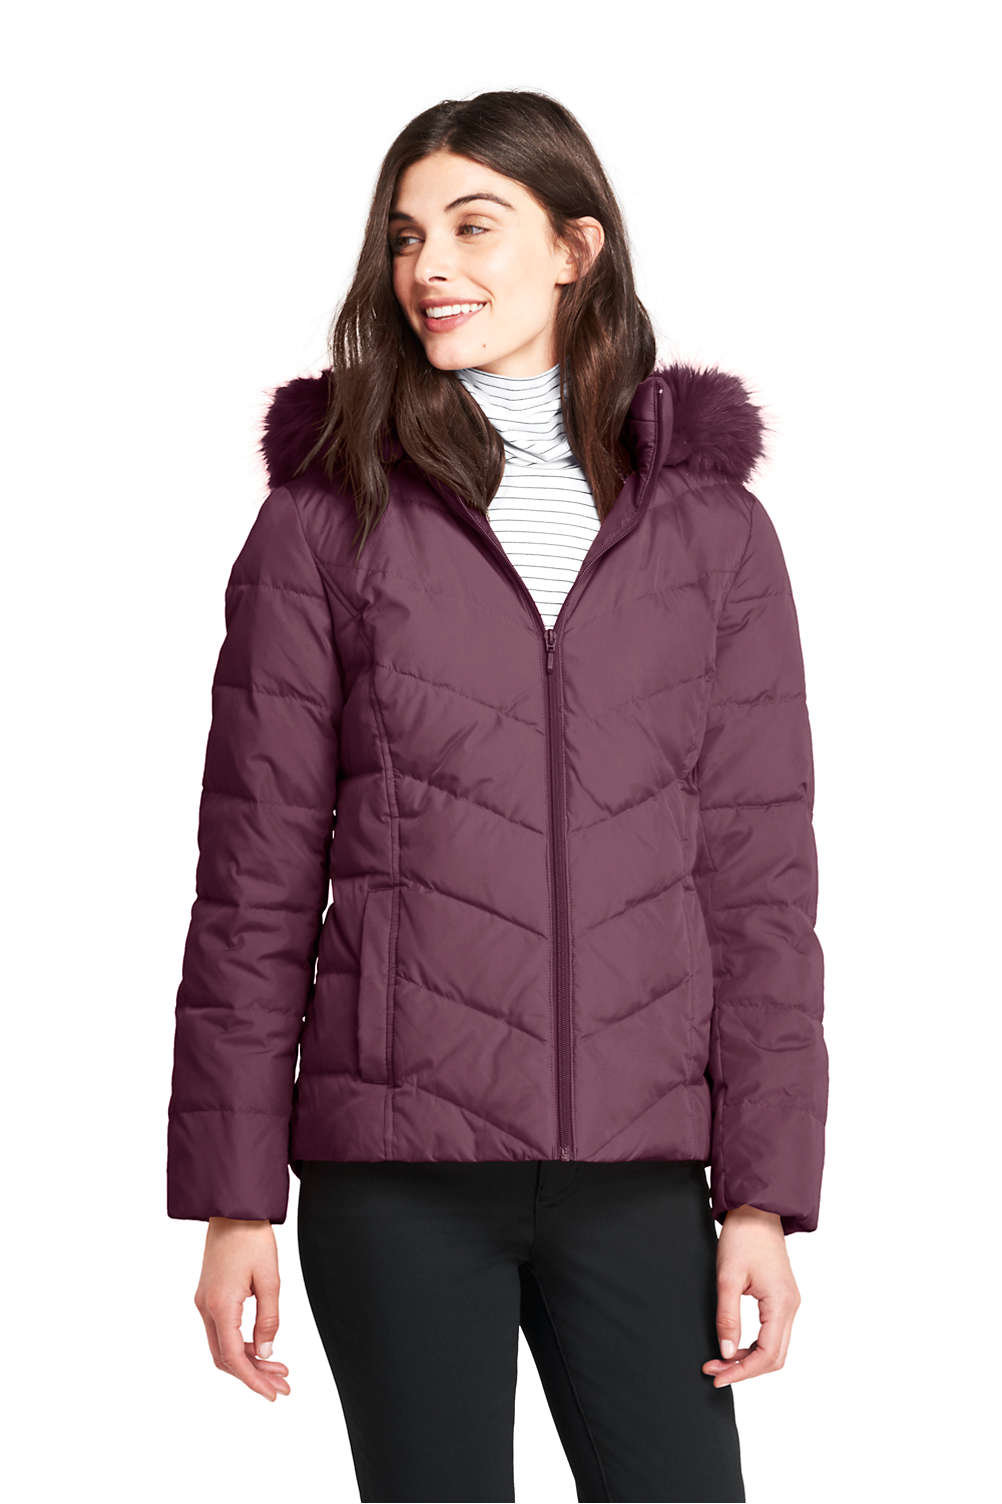 8e785c372ea9eb Women's Down Puffer Jacket With Faux Fur Hood from Lands' End